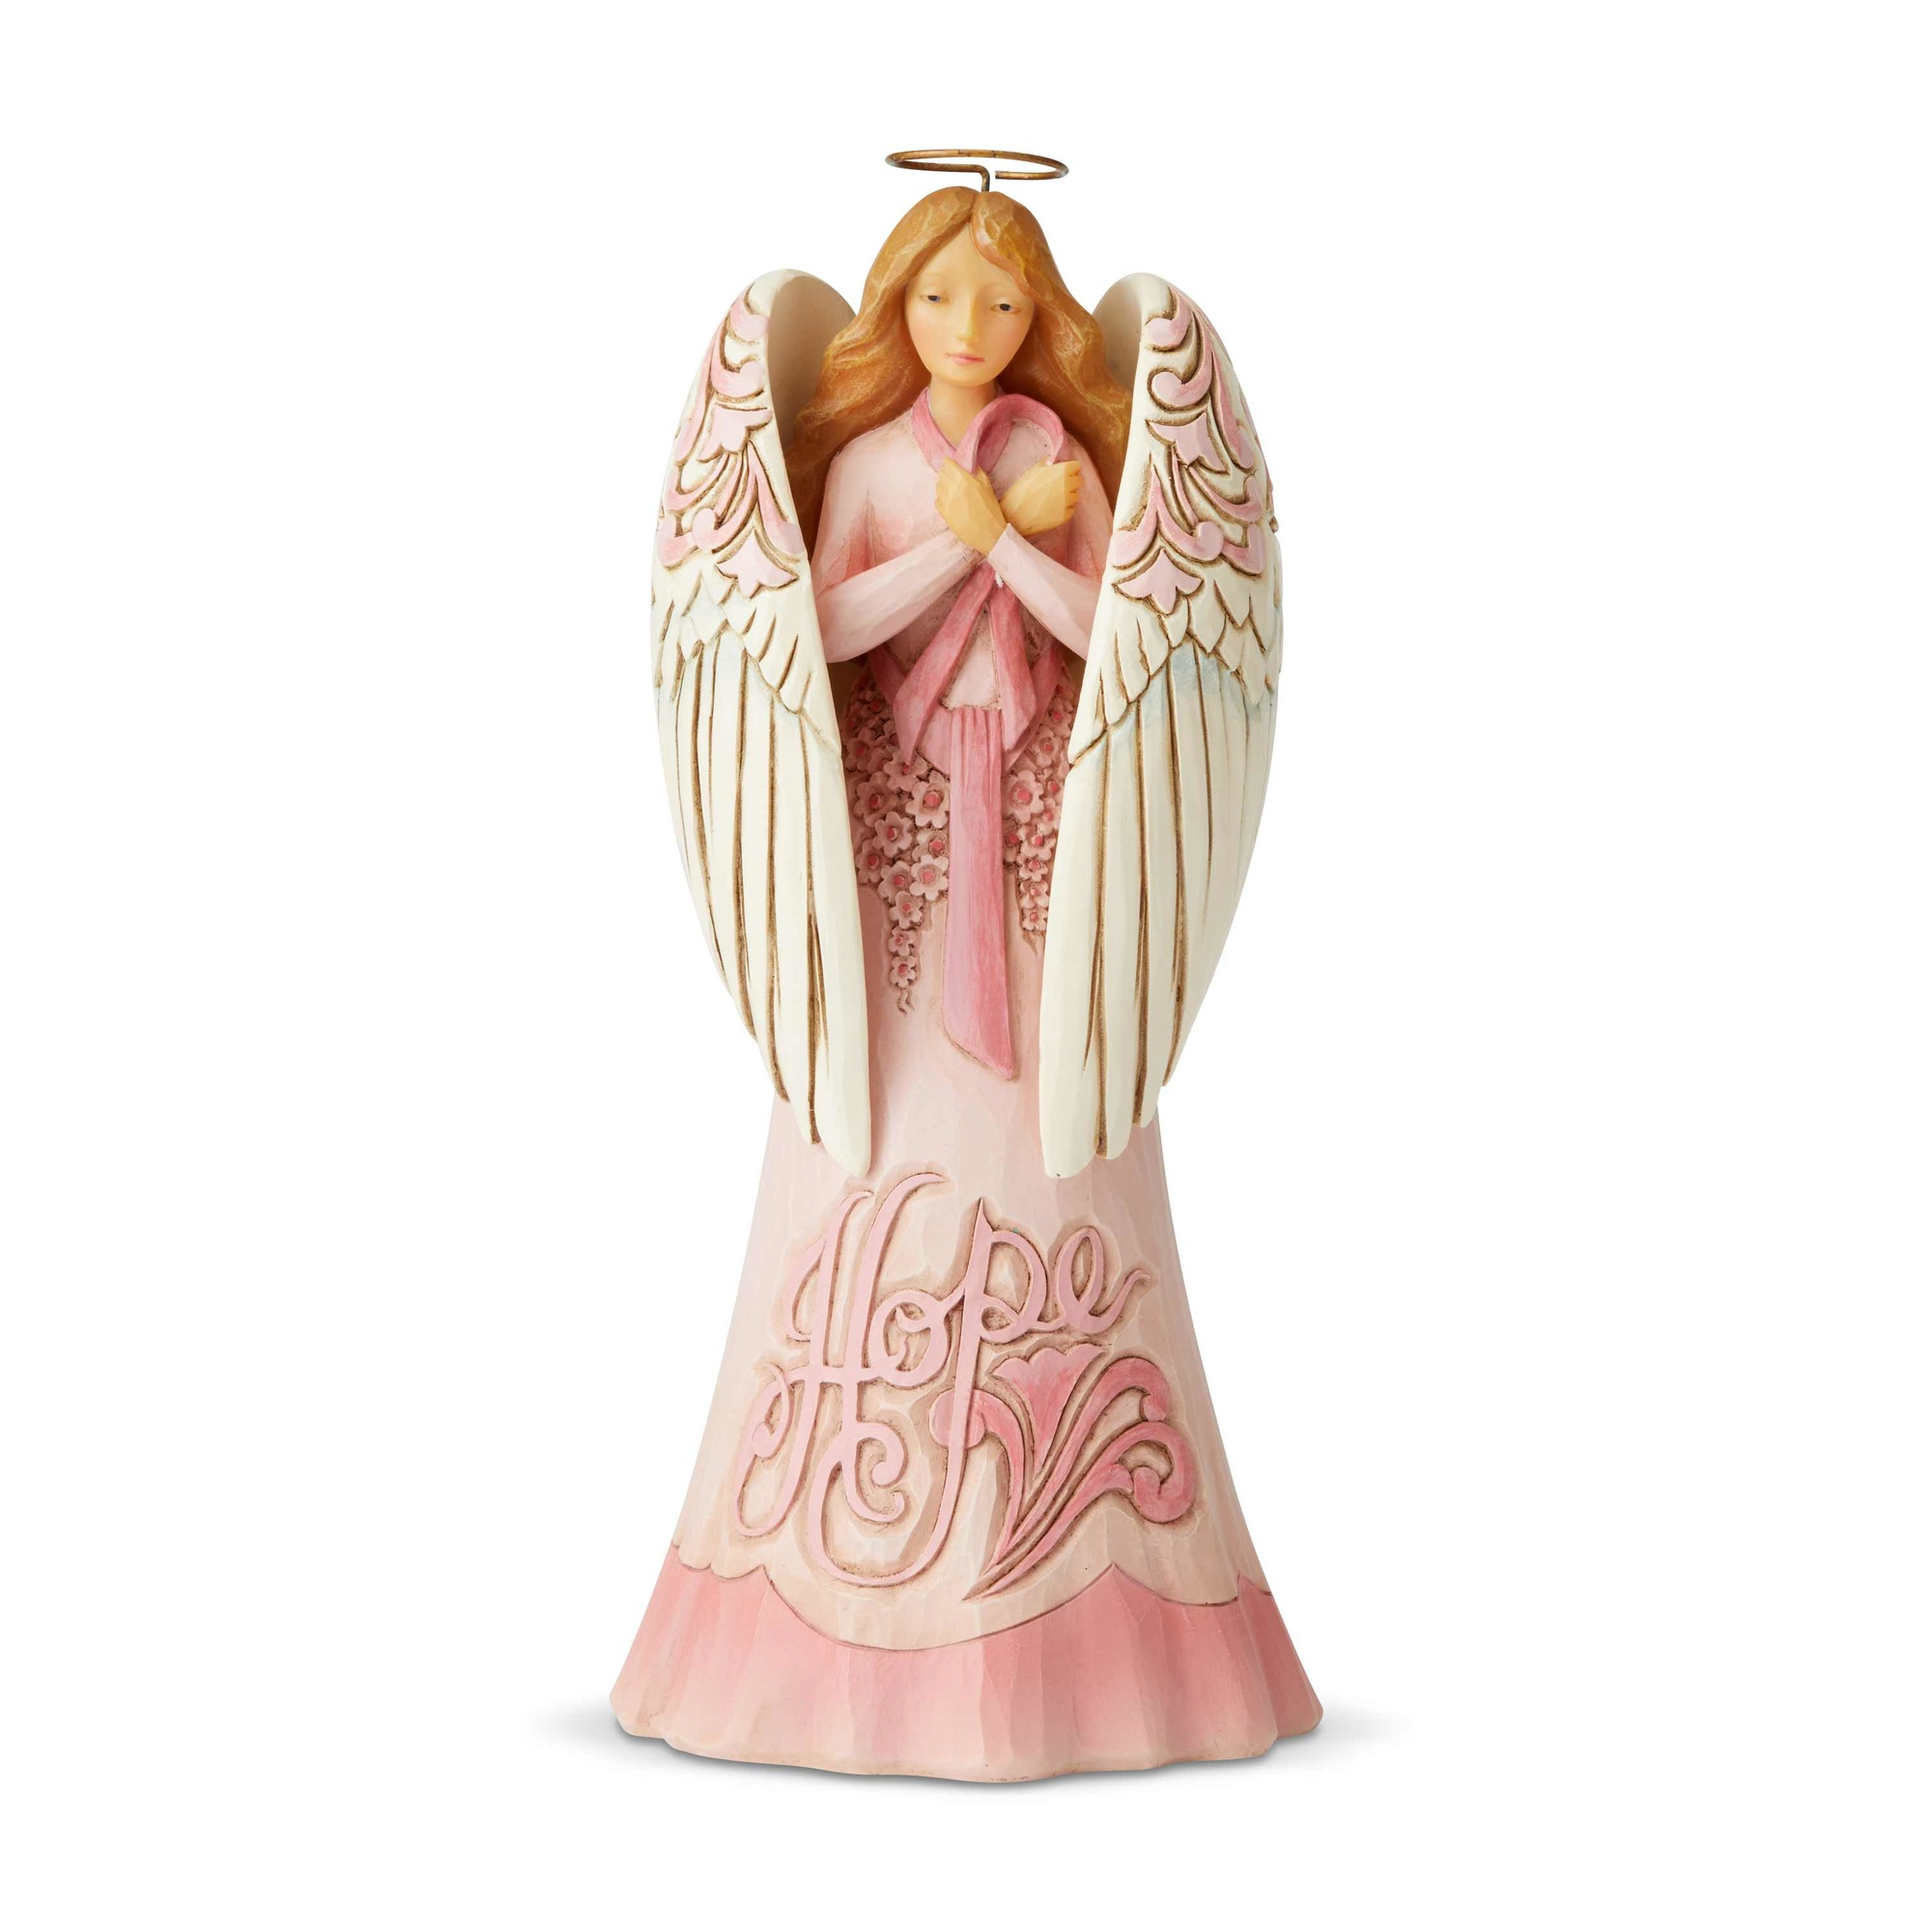 Jim Shore 6005910 Breast Cancer Angel Never Give Up Figurine